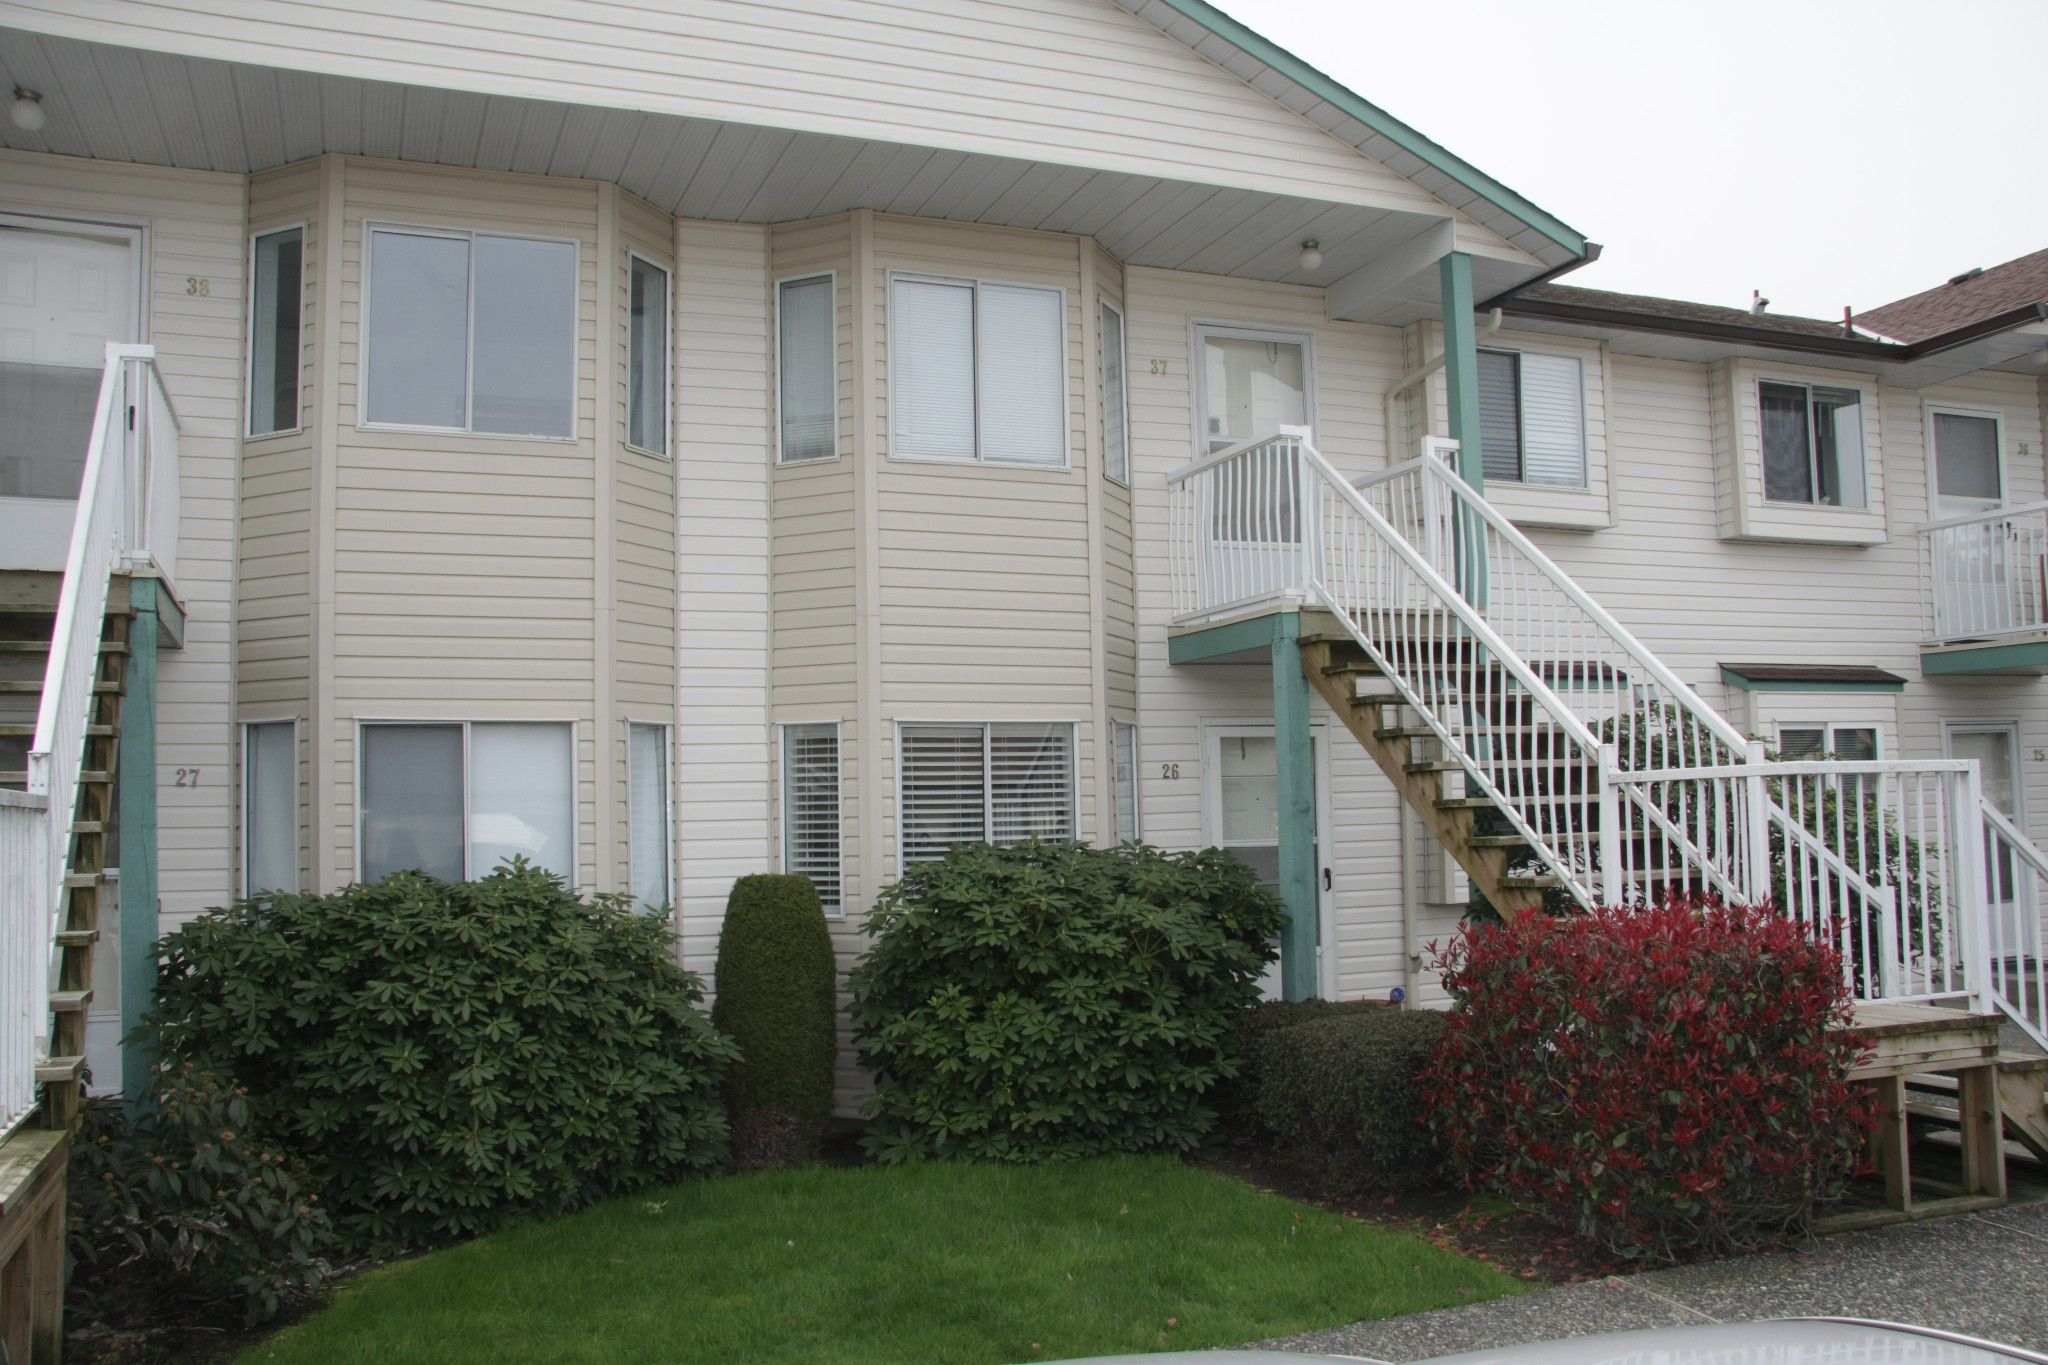 Main Photo: 26 45640 Storey Avenue in Chilliwack: Townhouse for sale : MLS®# R2259743